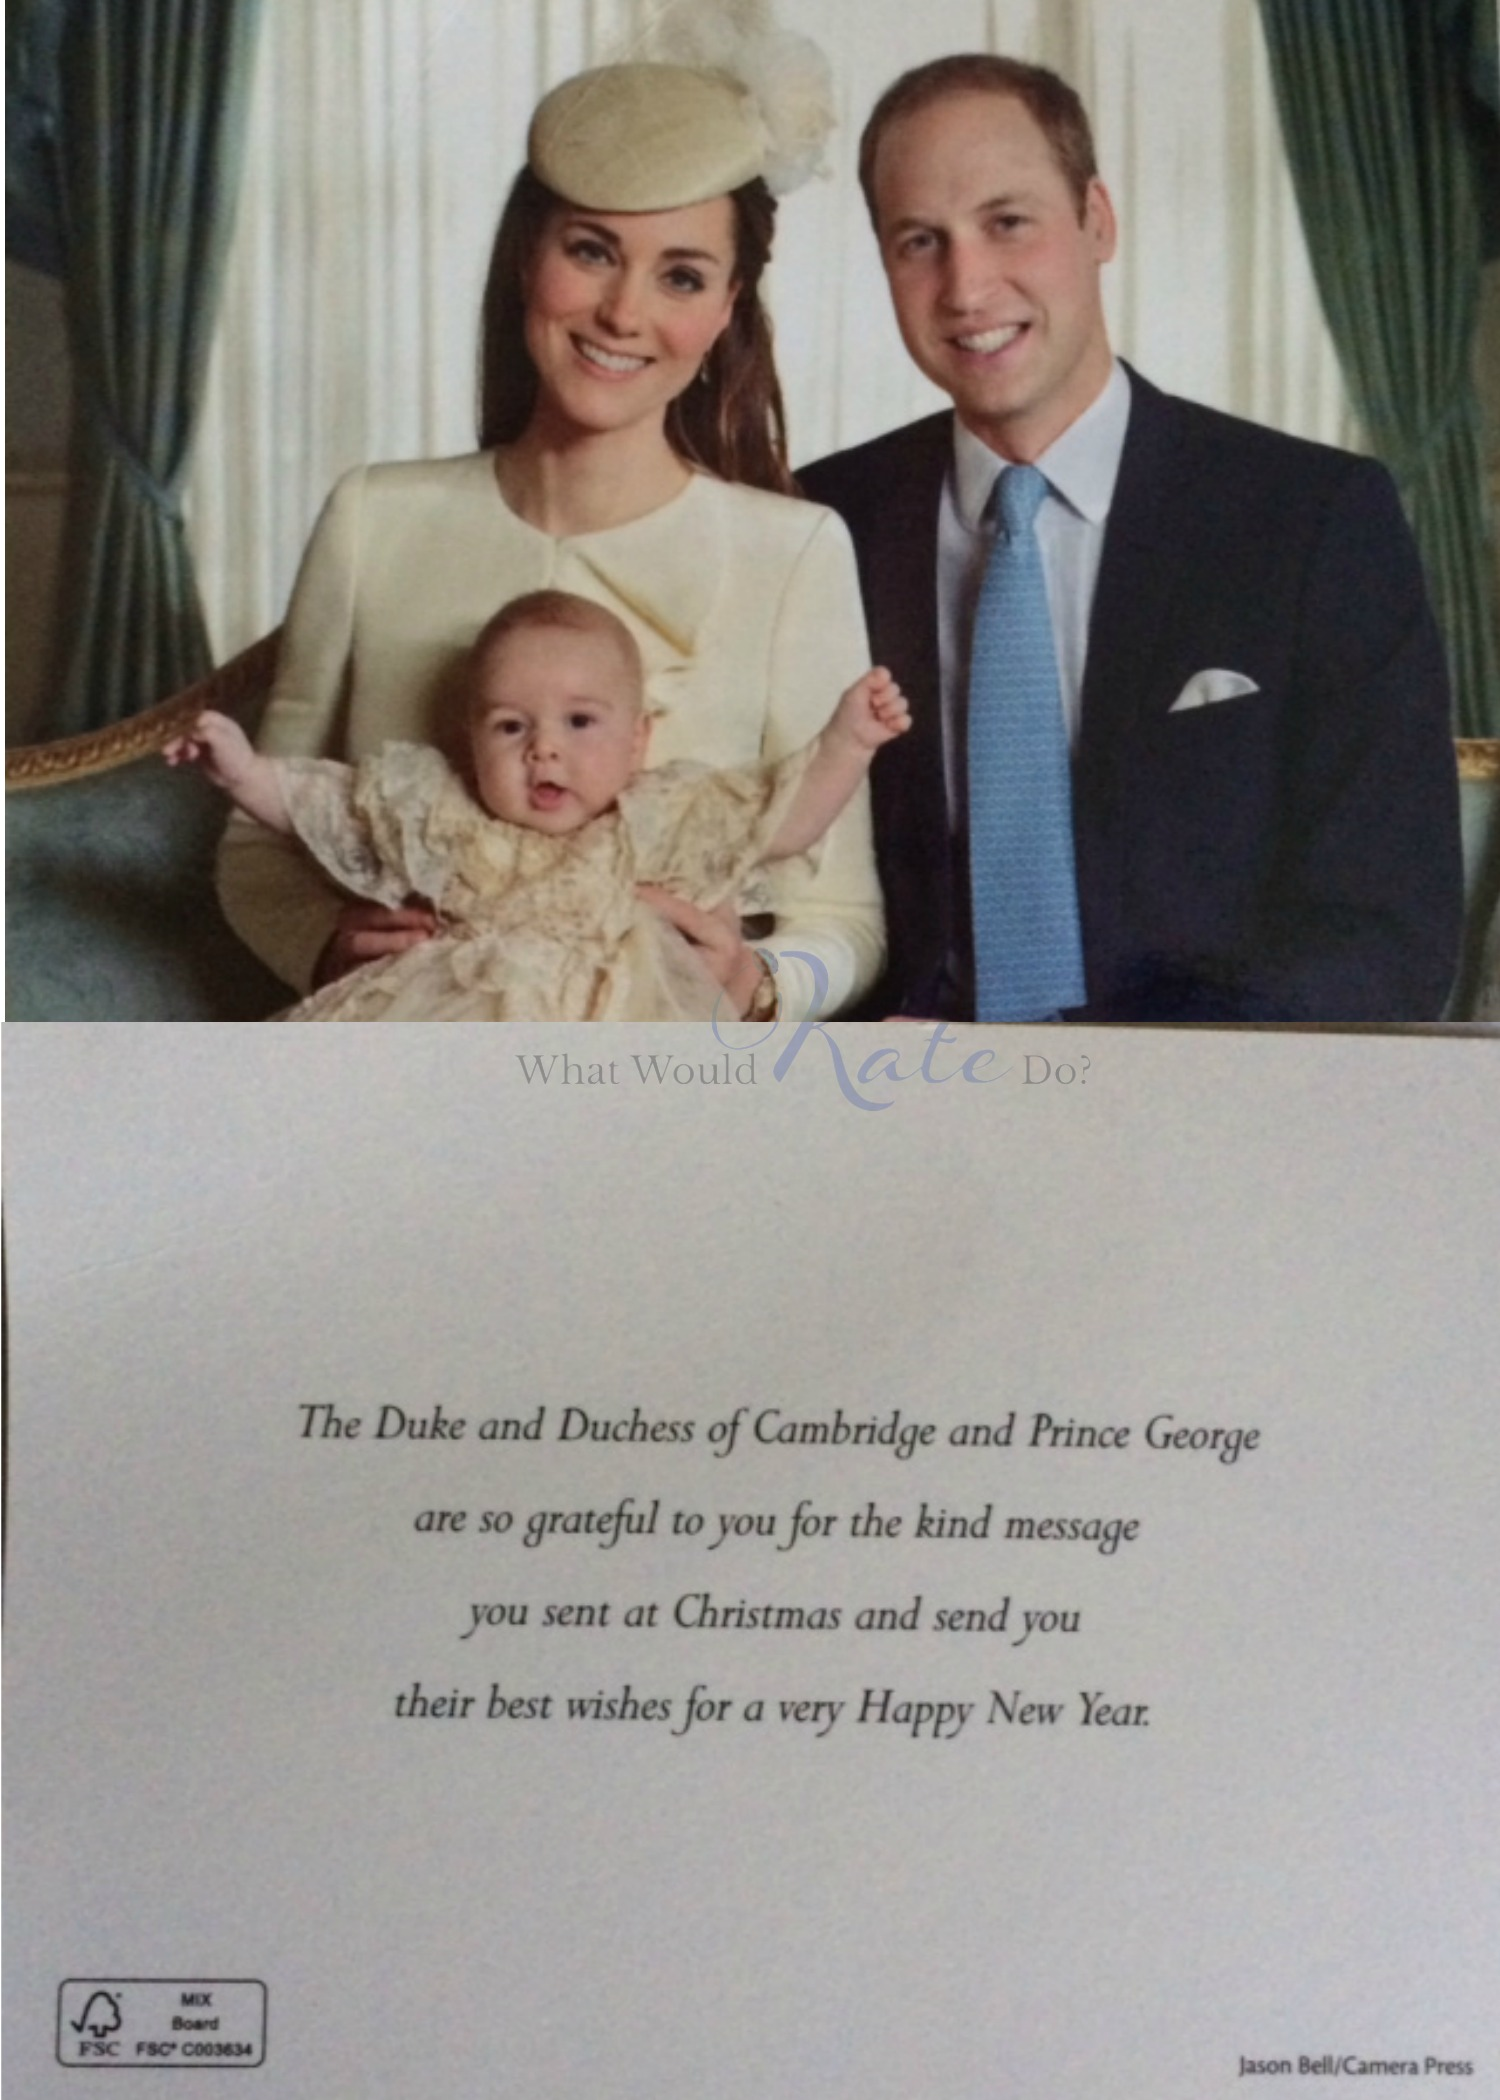 WK Christmas Card 2013 - What Would Kate Do?